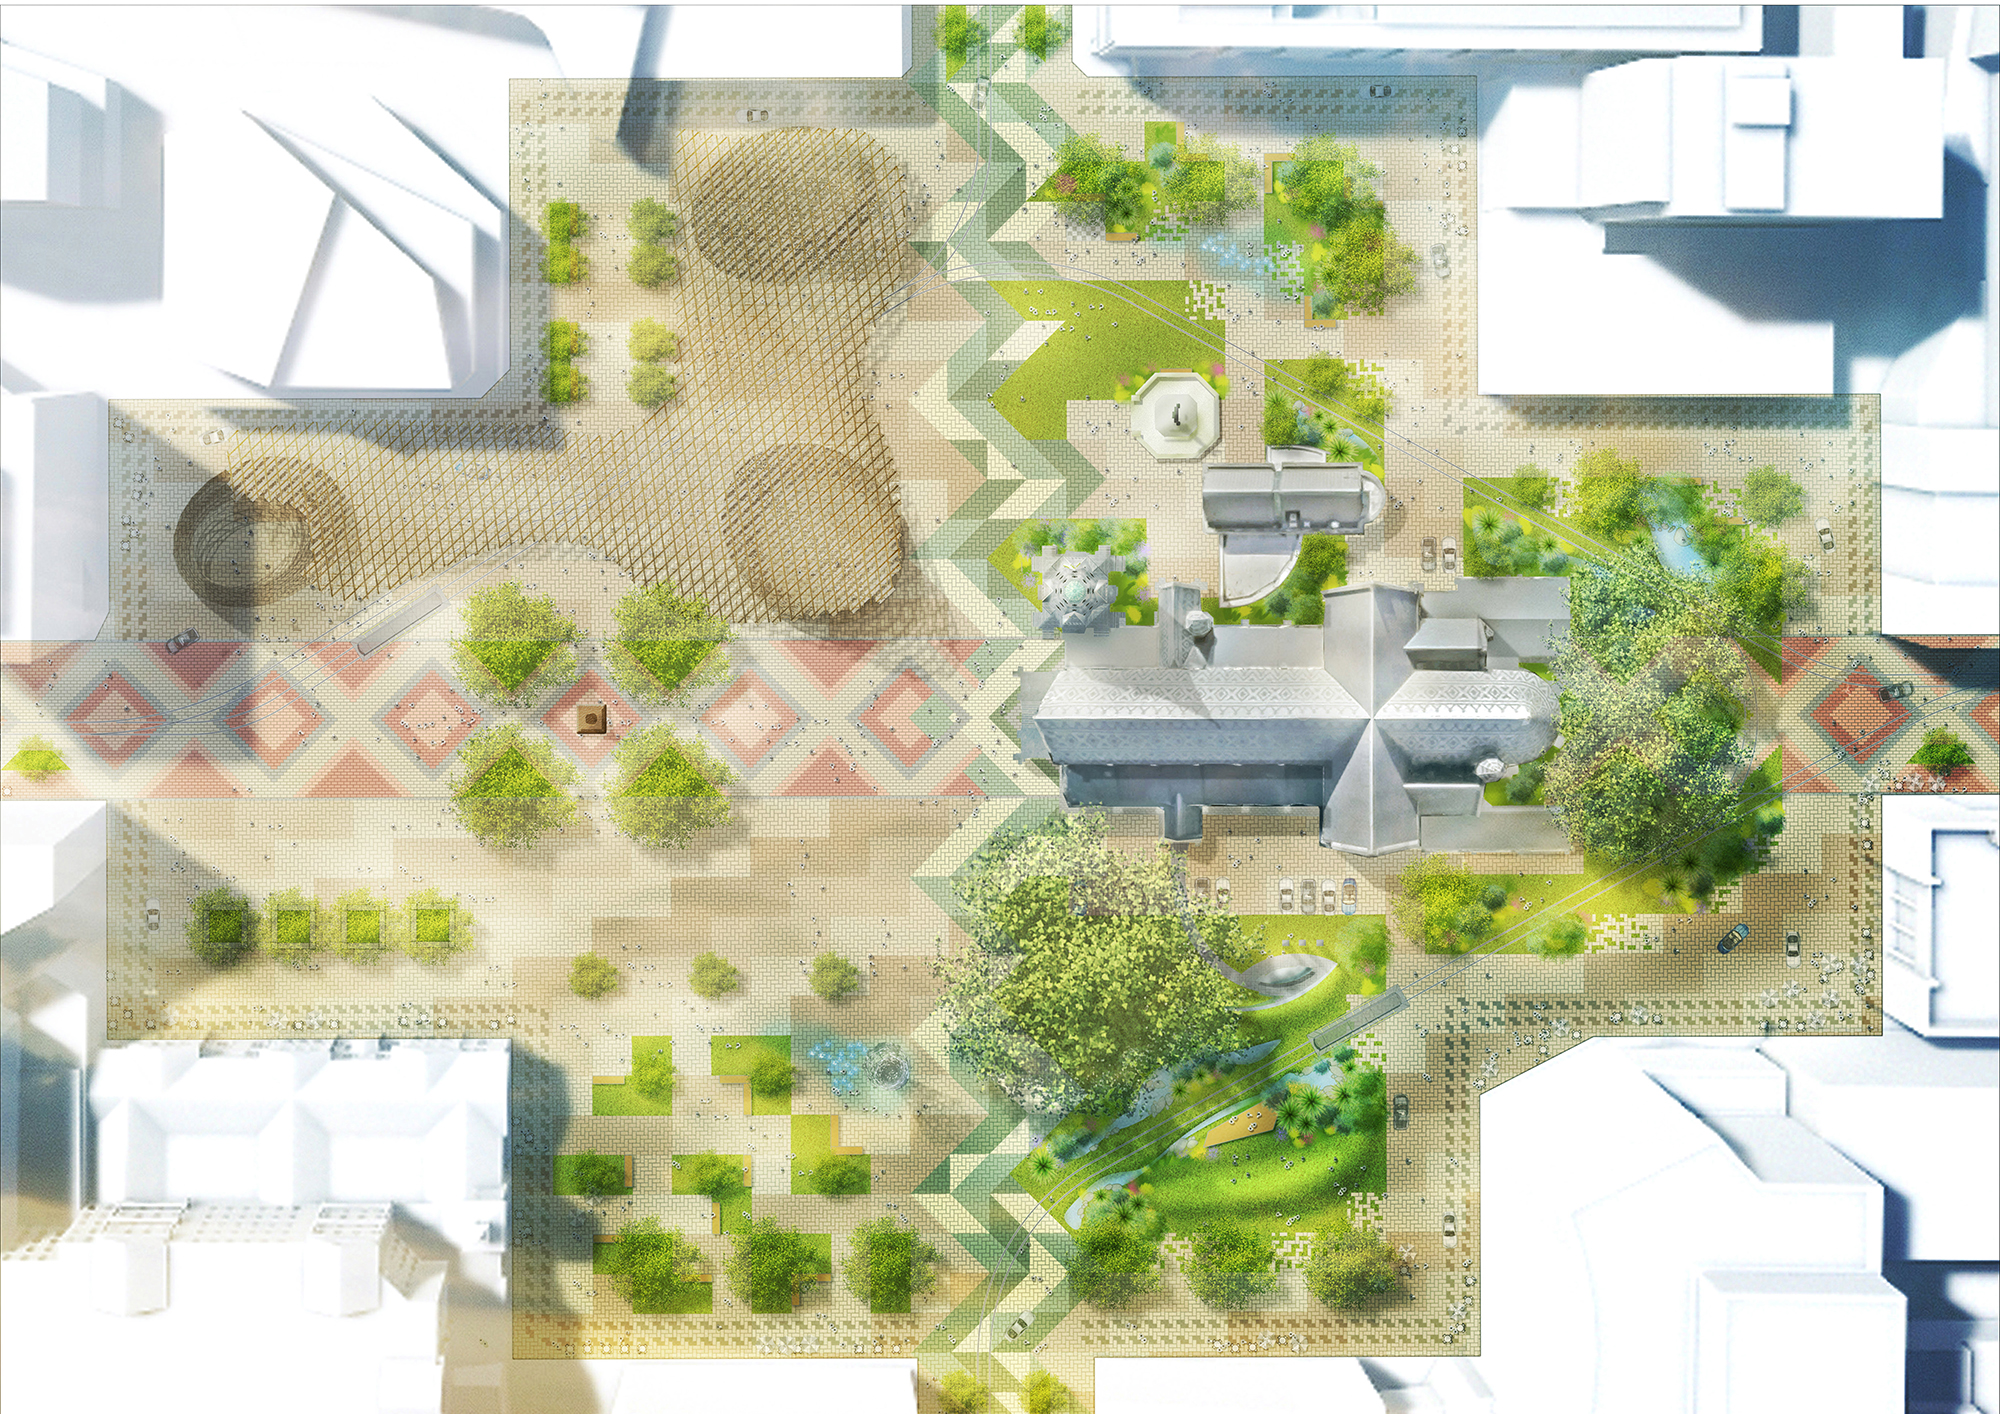 The plan for the square includes spaces suitable for holding public events.